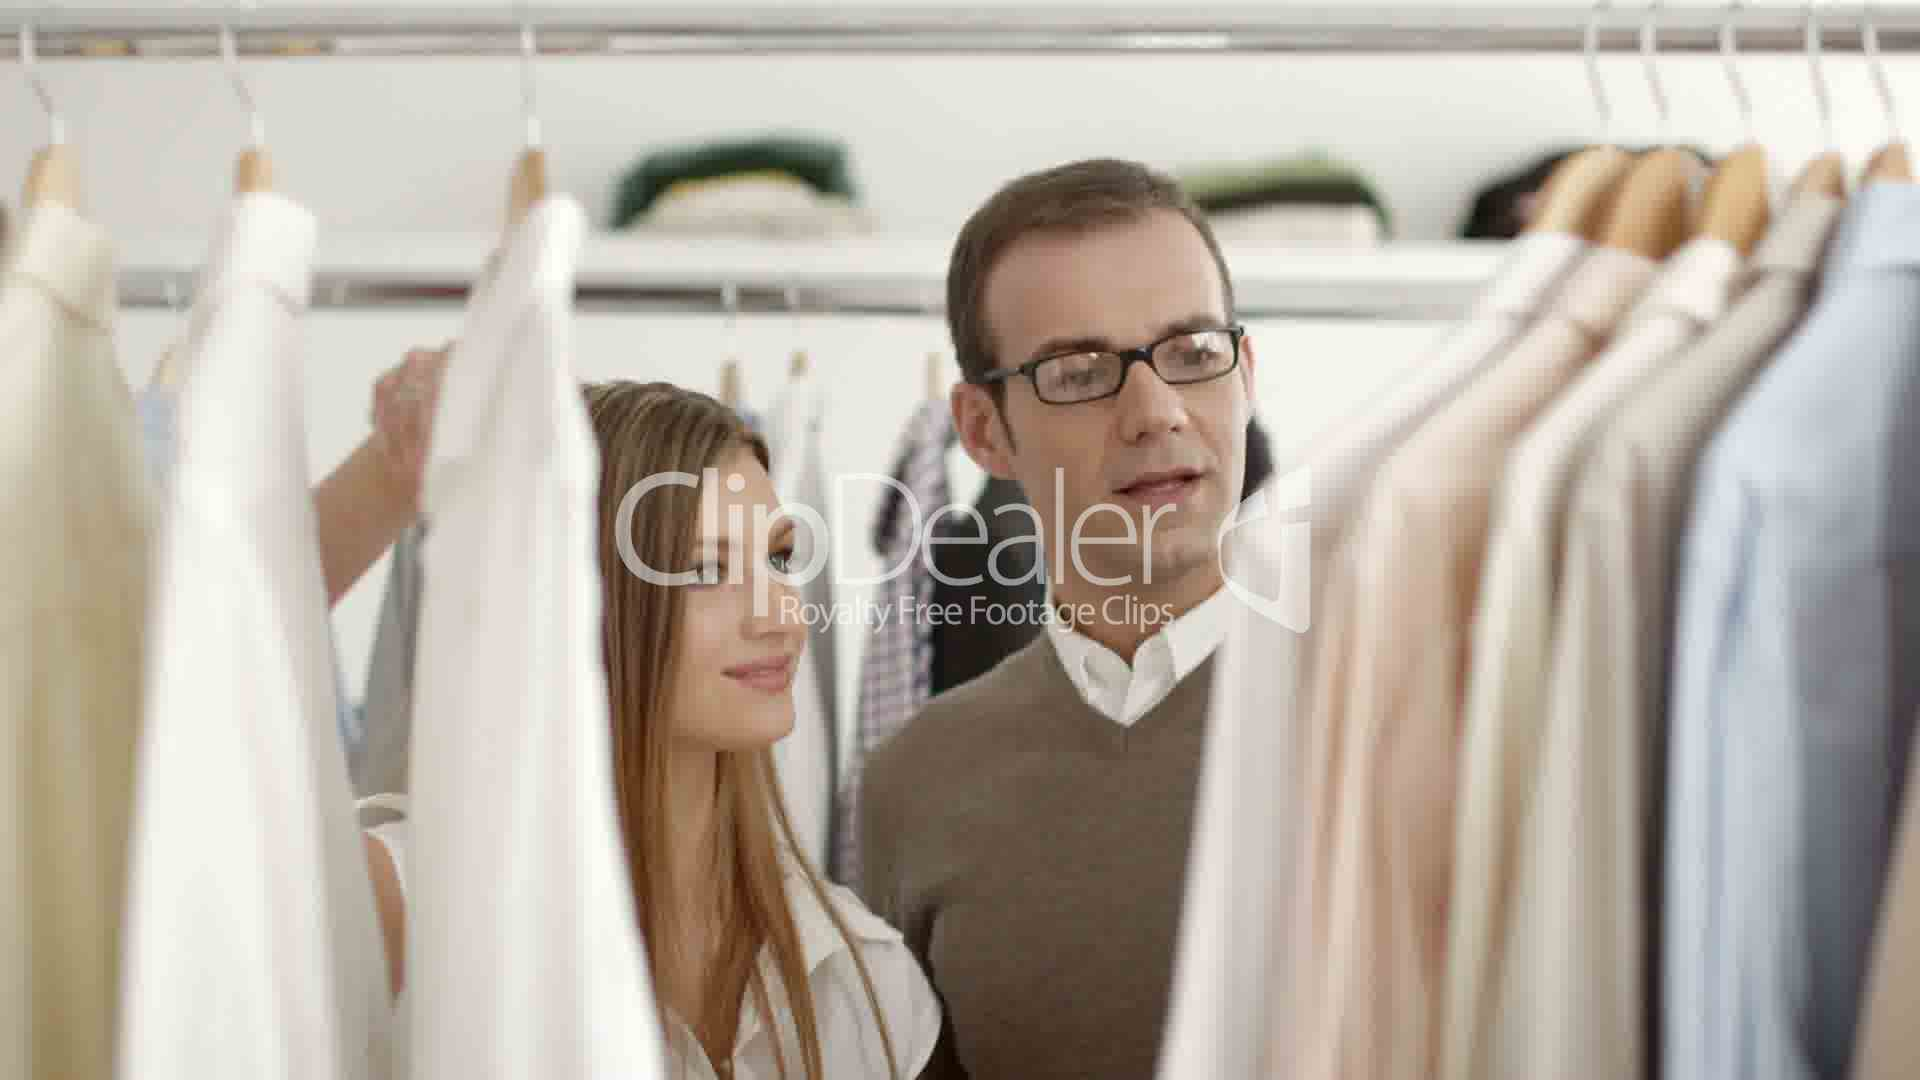 man talking    s assistant in clothes shop  royalty      clips  man talking    s assistant in clothes shop